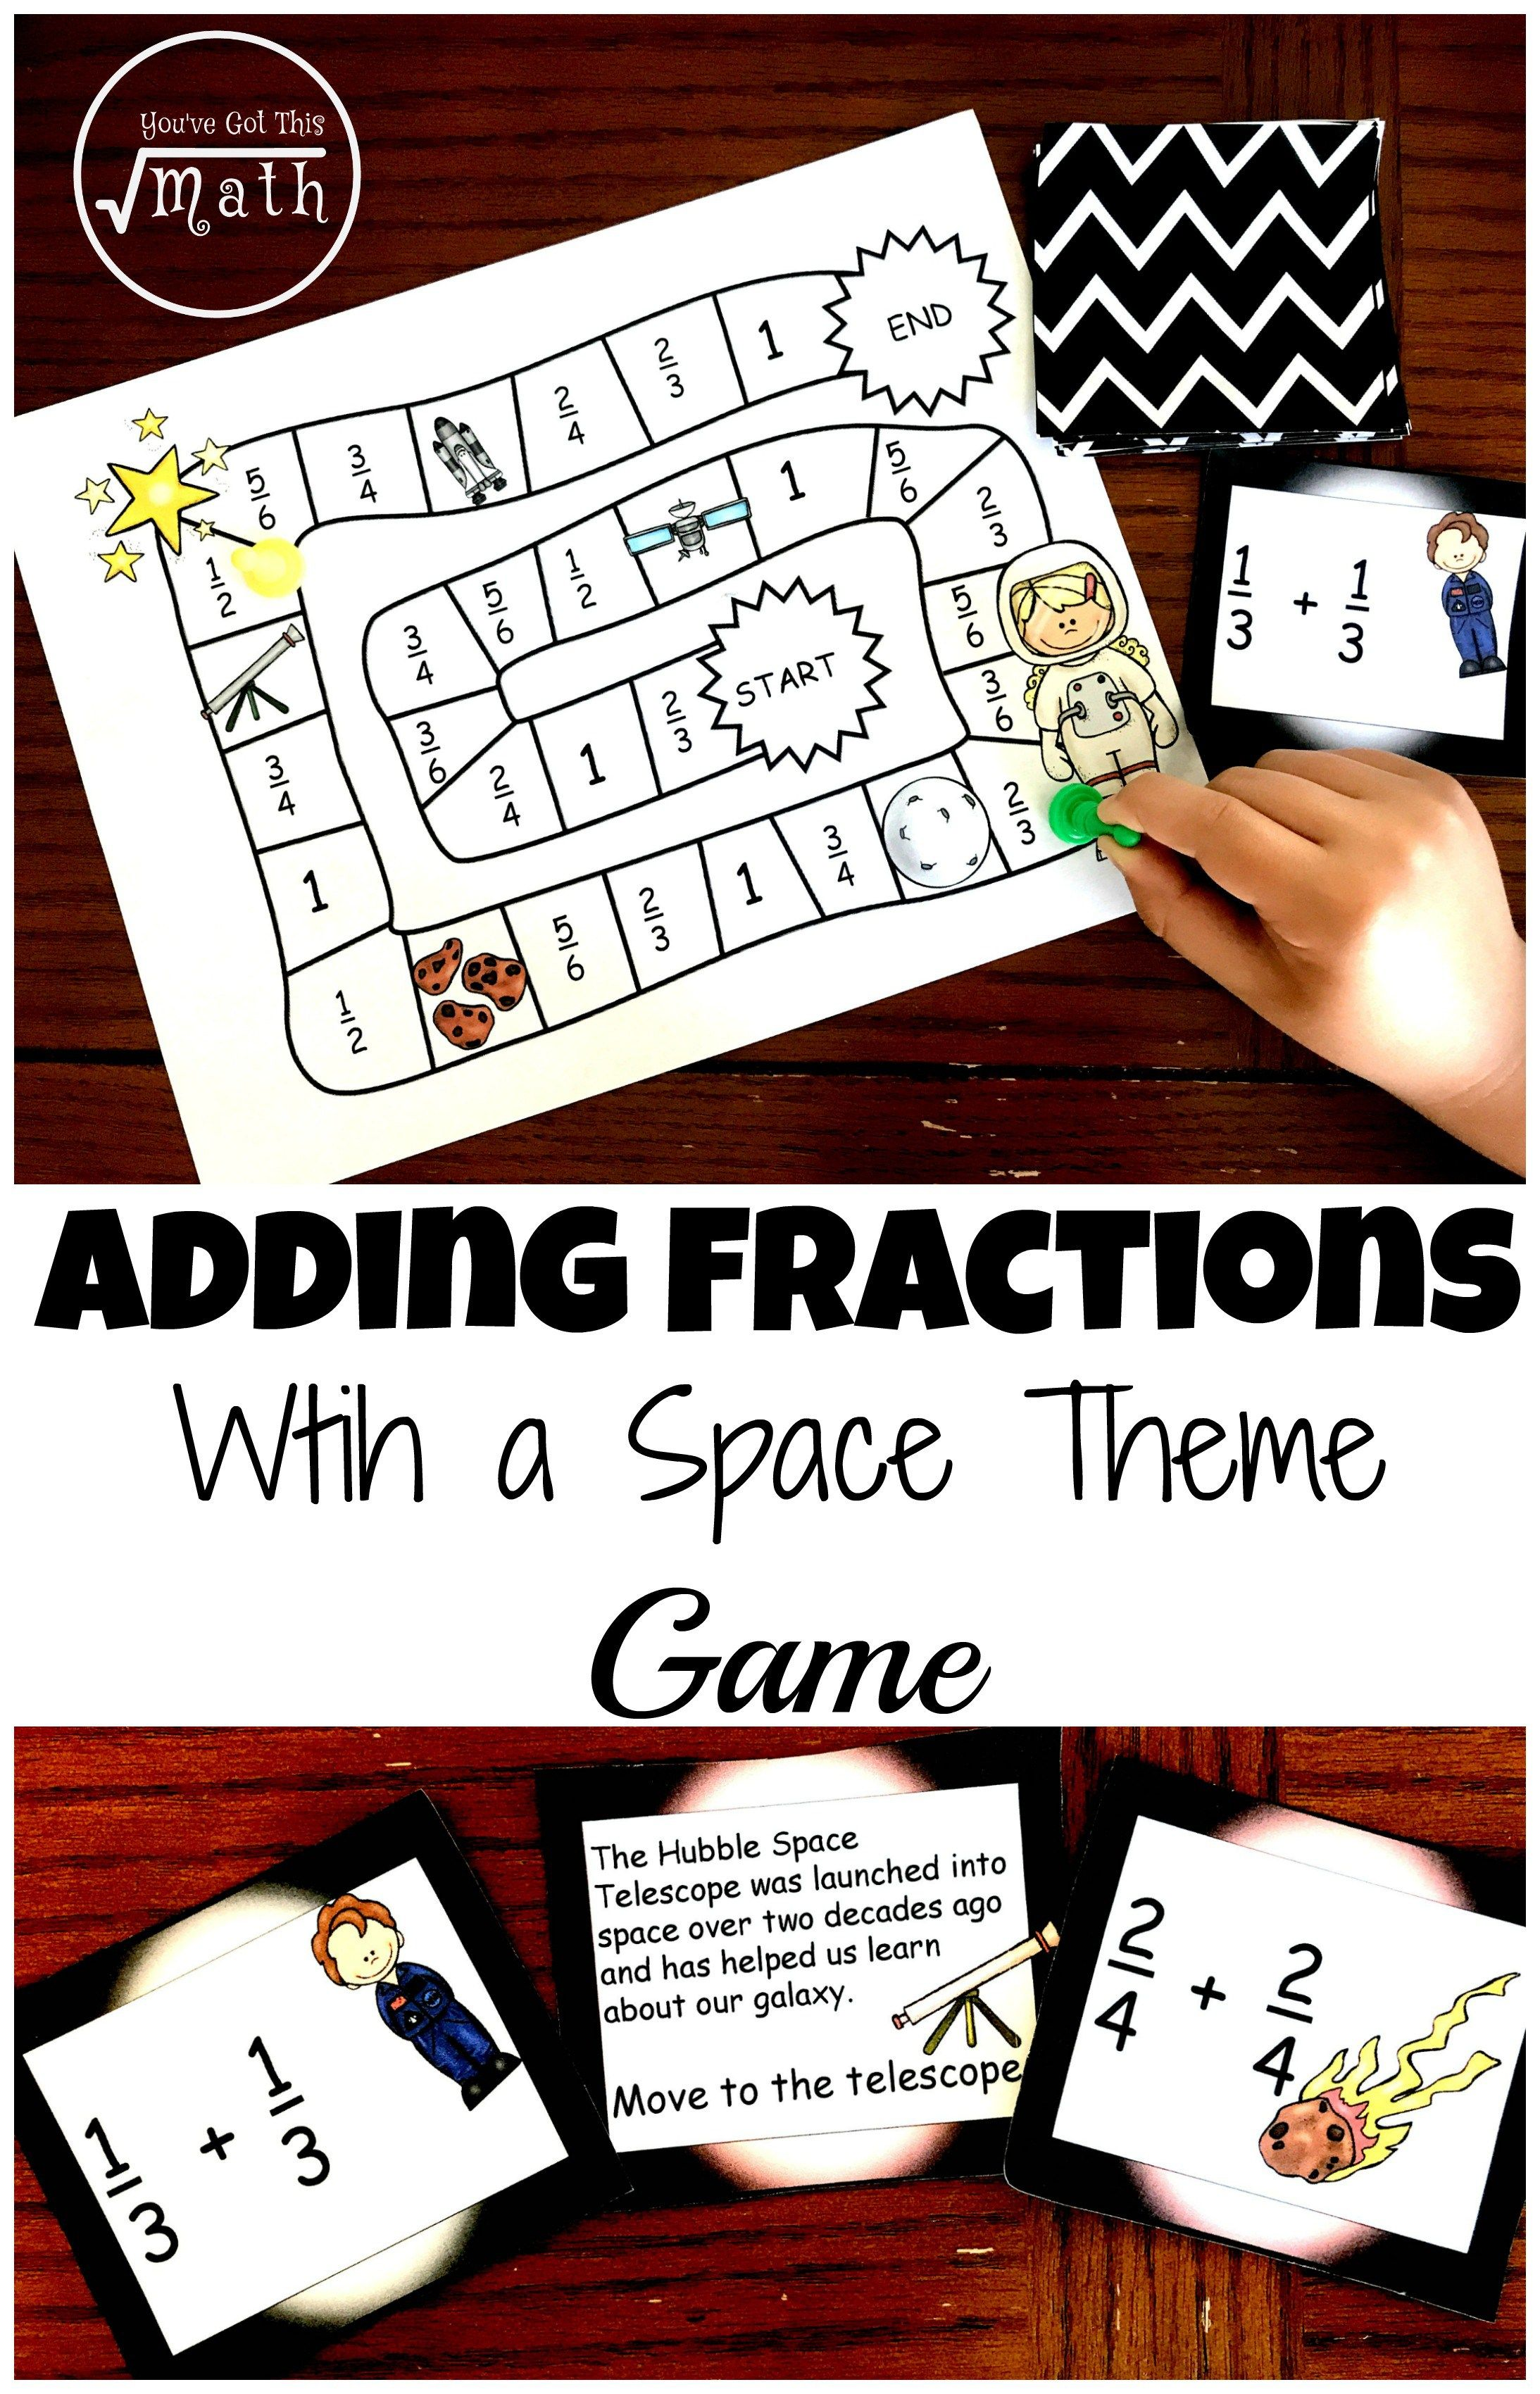 Worksheet On Adding Like Fractions